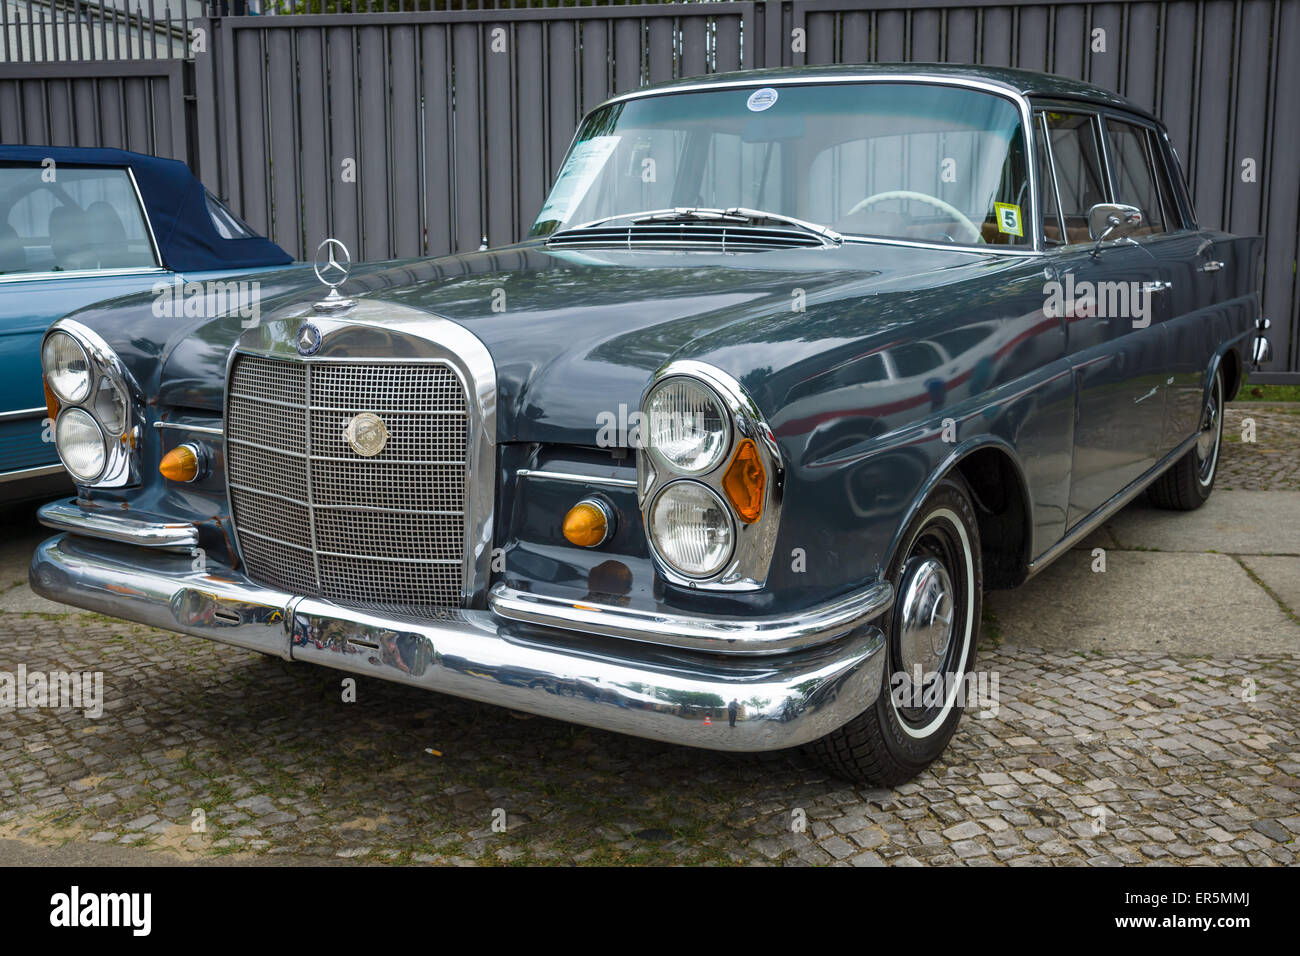 berlin may 10 2015 full size luxury car mercedes benz 230s stock photo royalty free image. Black Bedroom Furniture Sets. Home Design Ideas